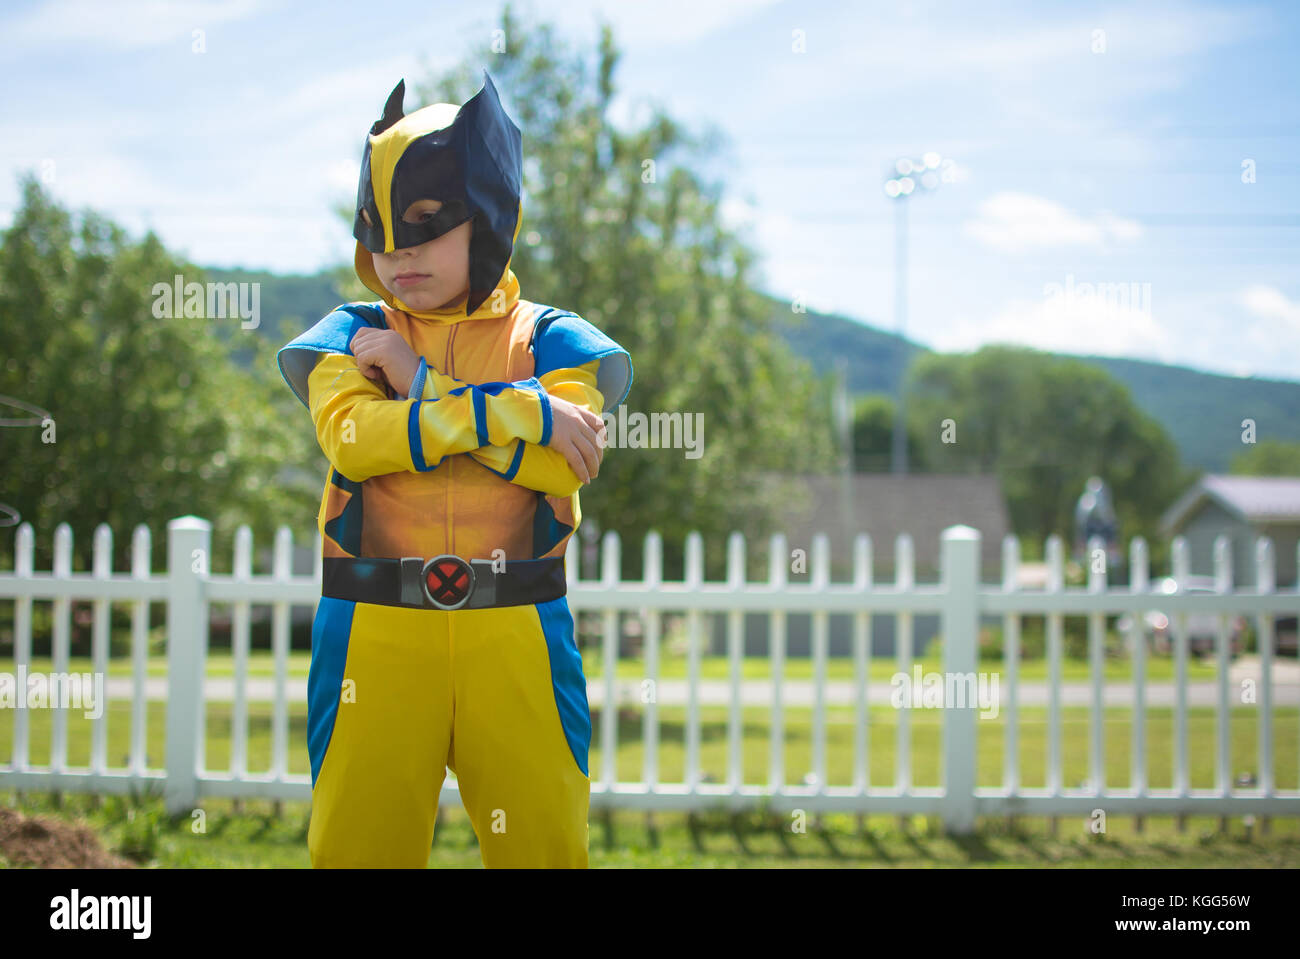 A young boy wears a costume standing outside with folded arms - Stock Image